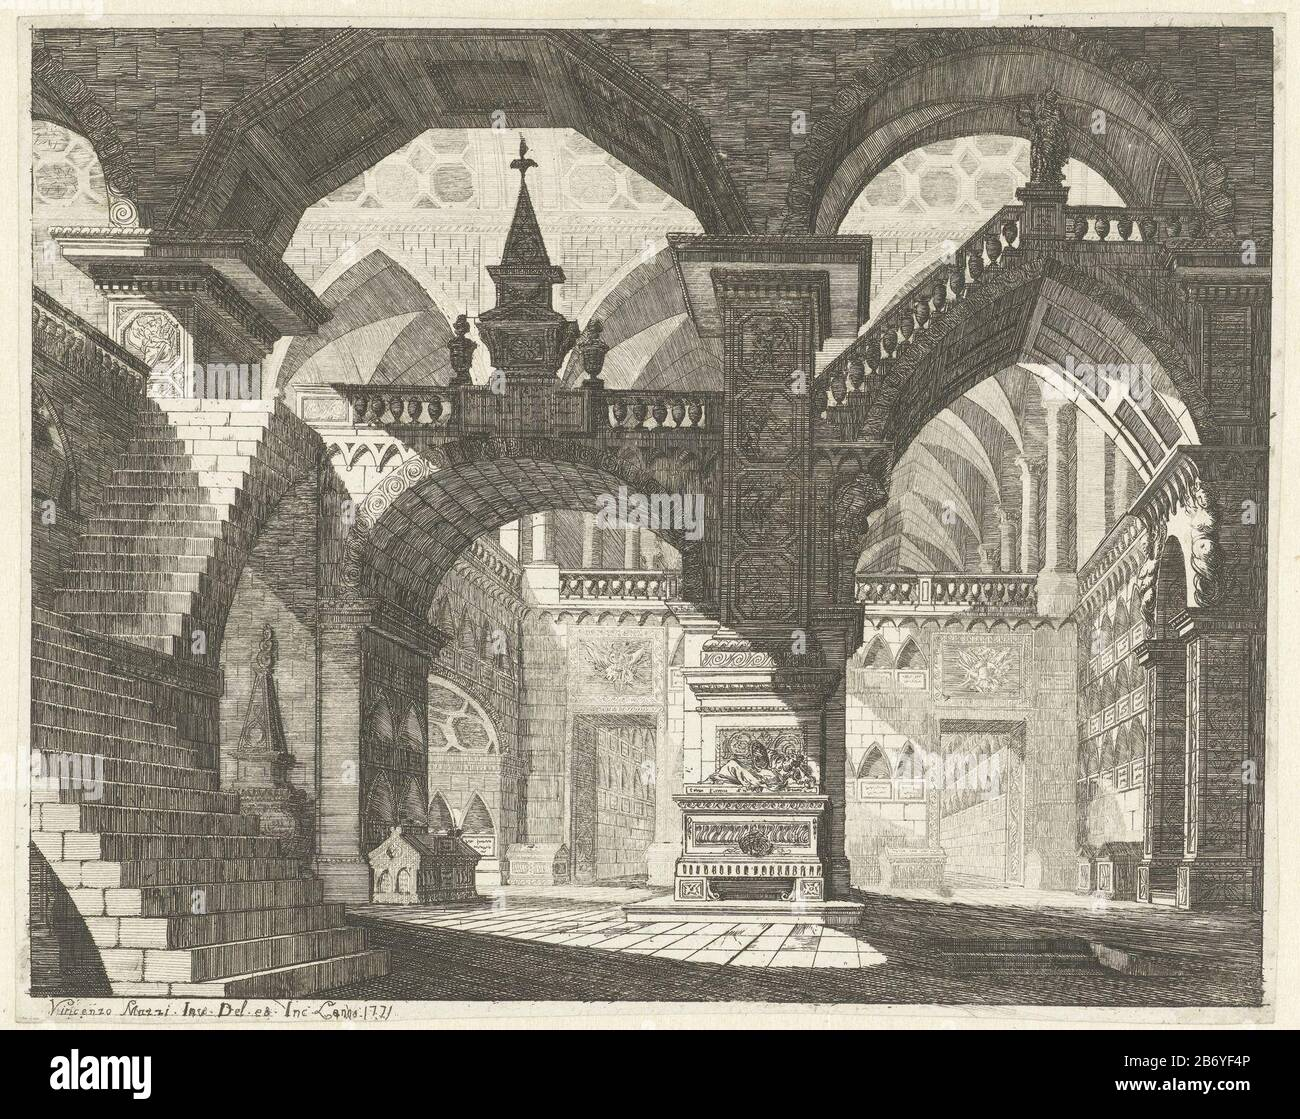 Kerkinterieur Caprici Di Scene Teatrali Serietitel Fantasy Interior Of A Church With With Stairs And Railings In The Crypt Various Tombs Print Out A Series Of Twelve With For Theaterdecors Manufacturer Examples